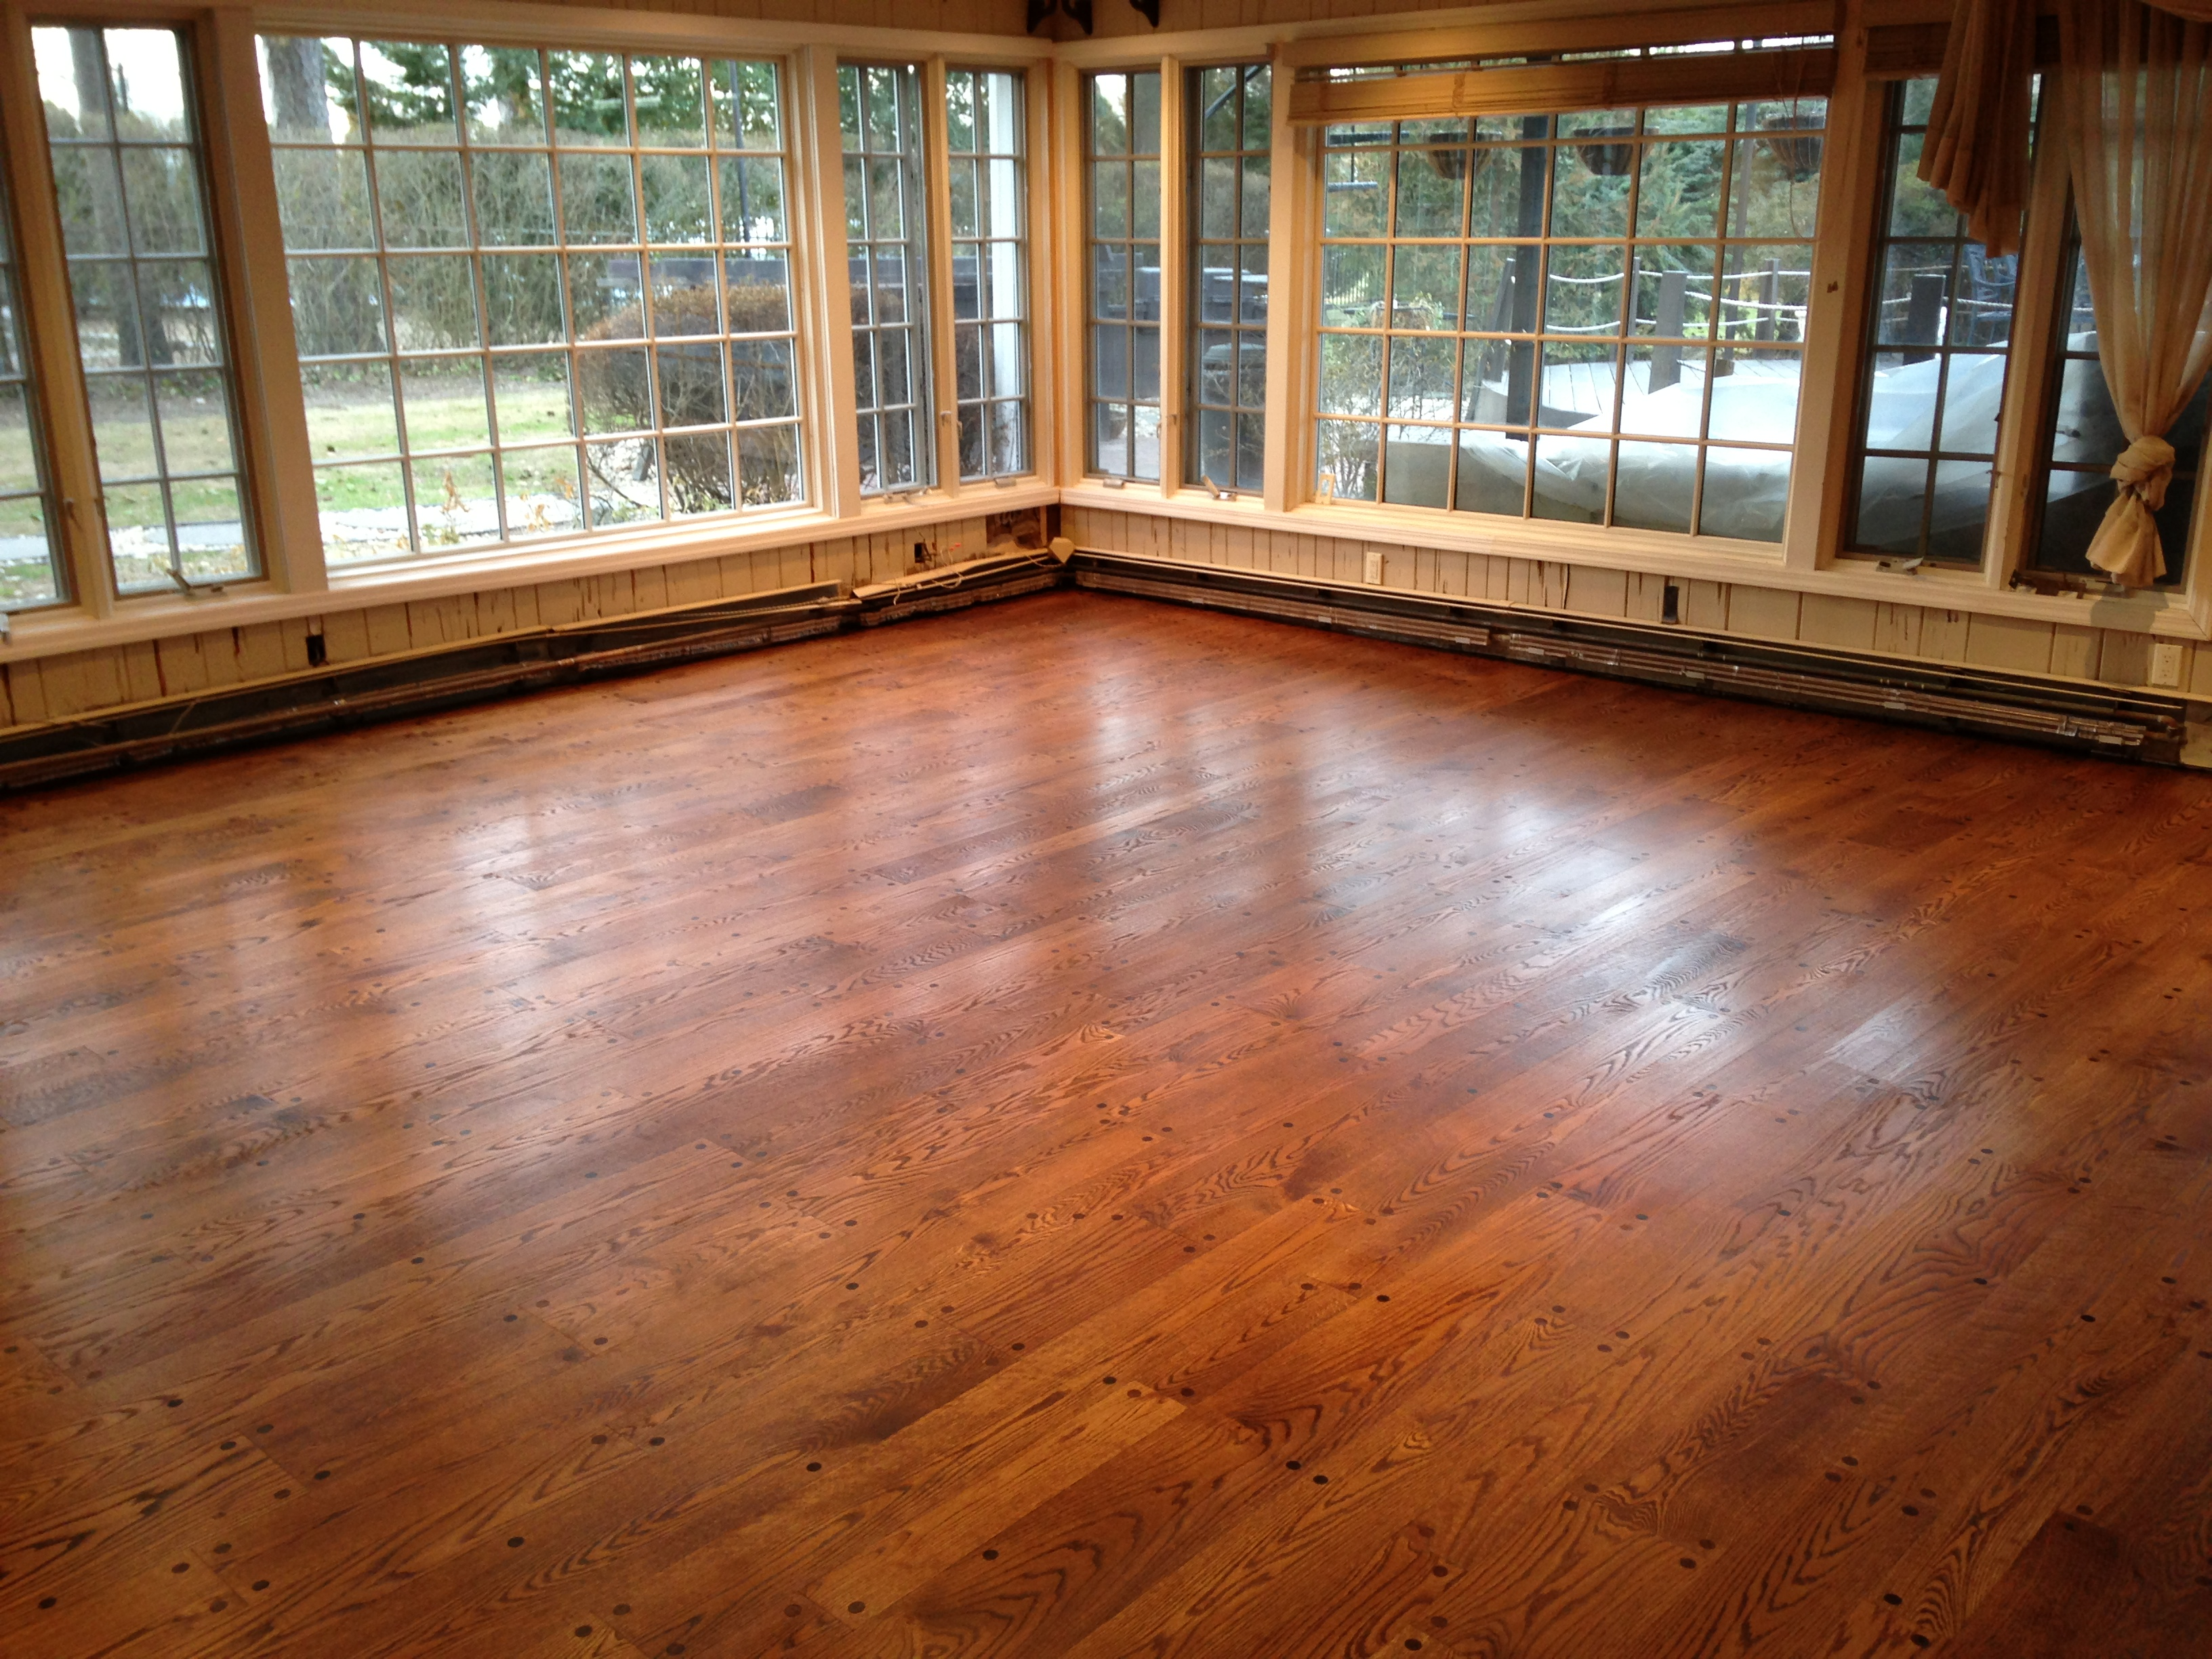 Replacing An Old Floor To New Again Go Green Floors Eco Friendly - How much does it cost for new flooring